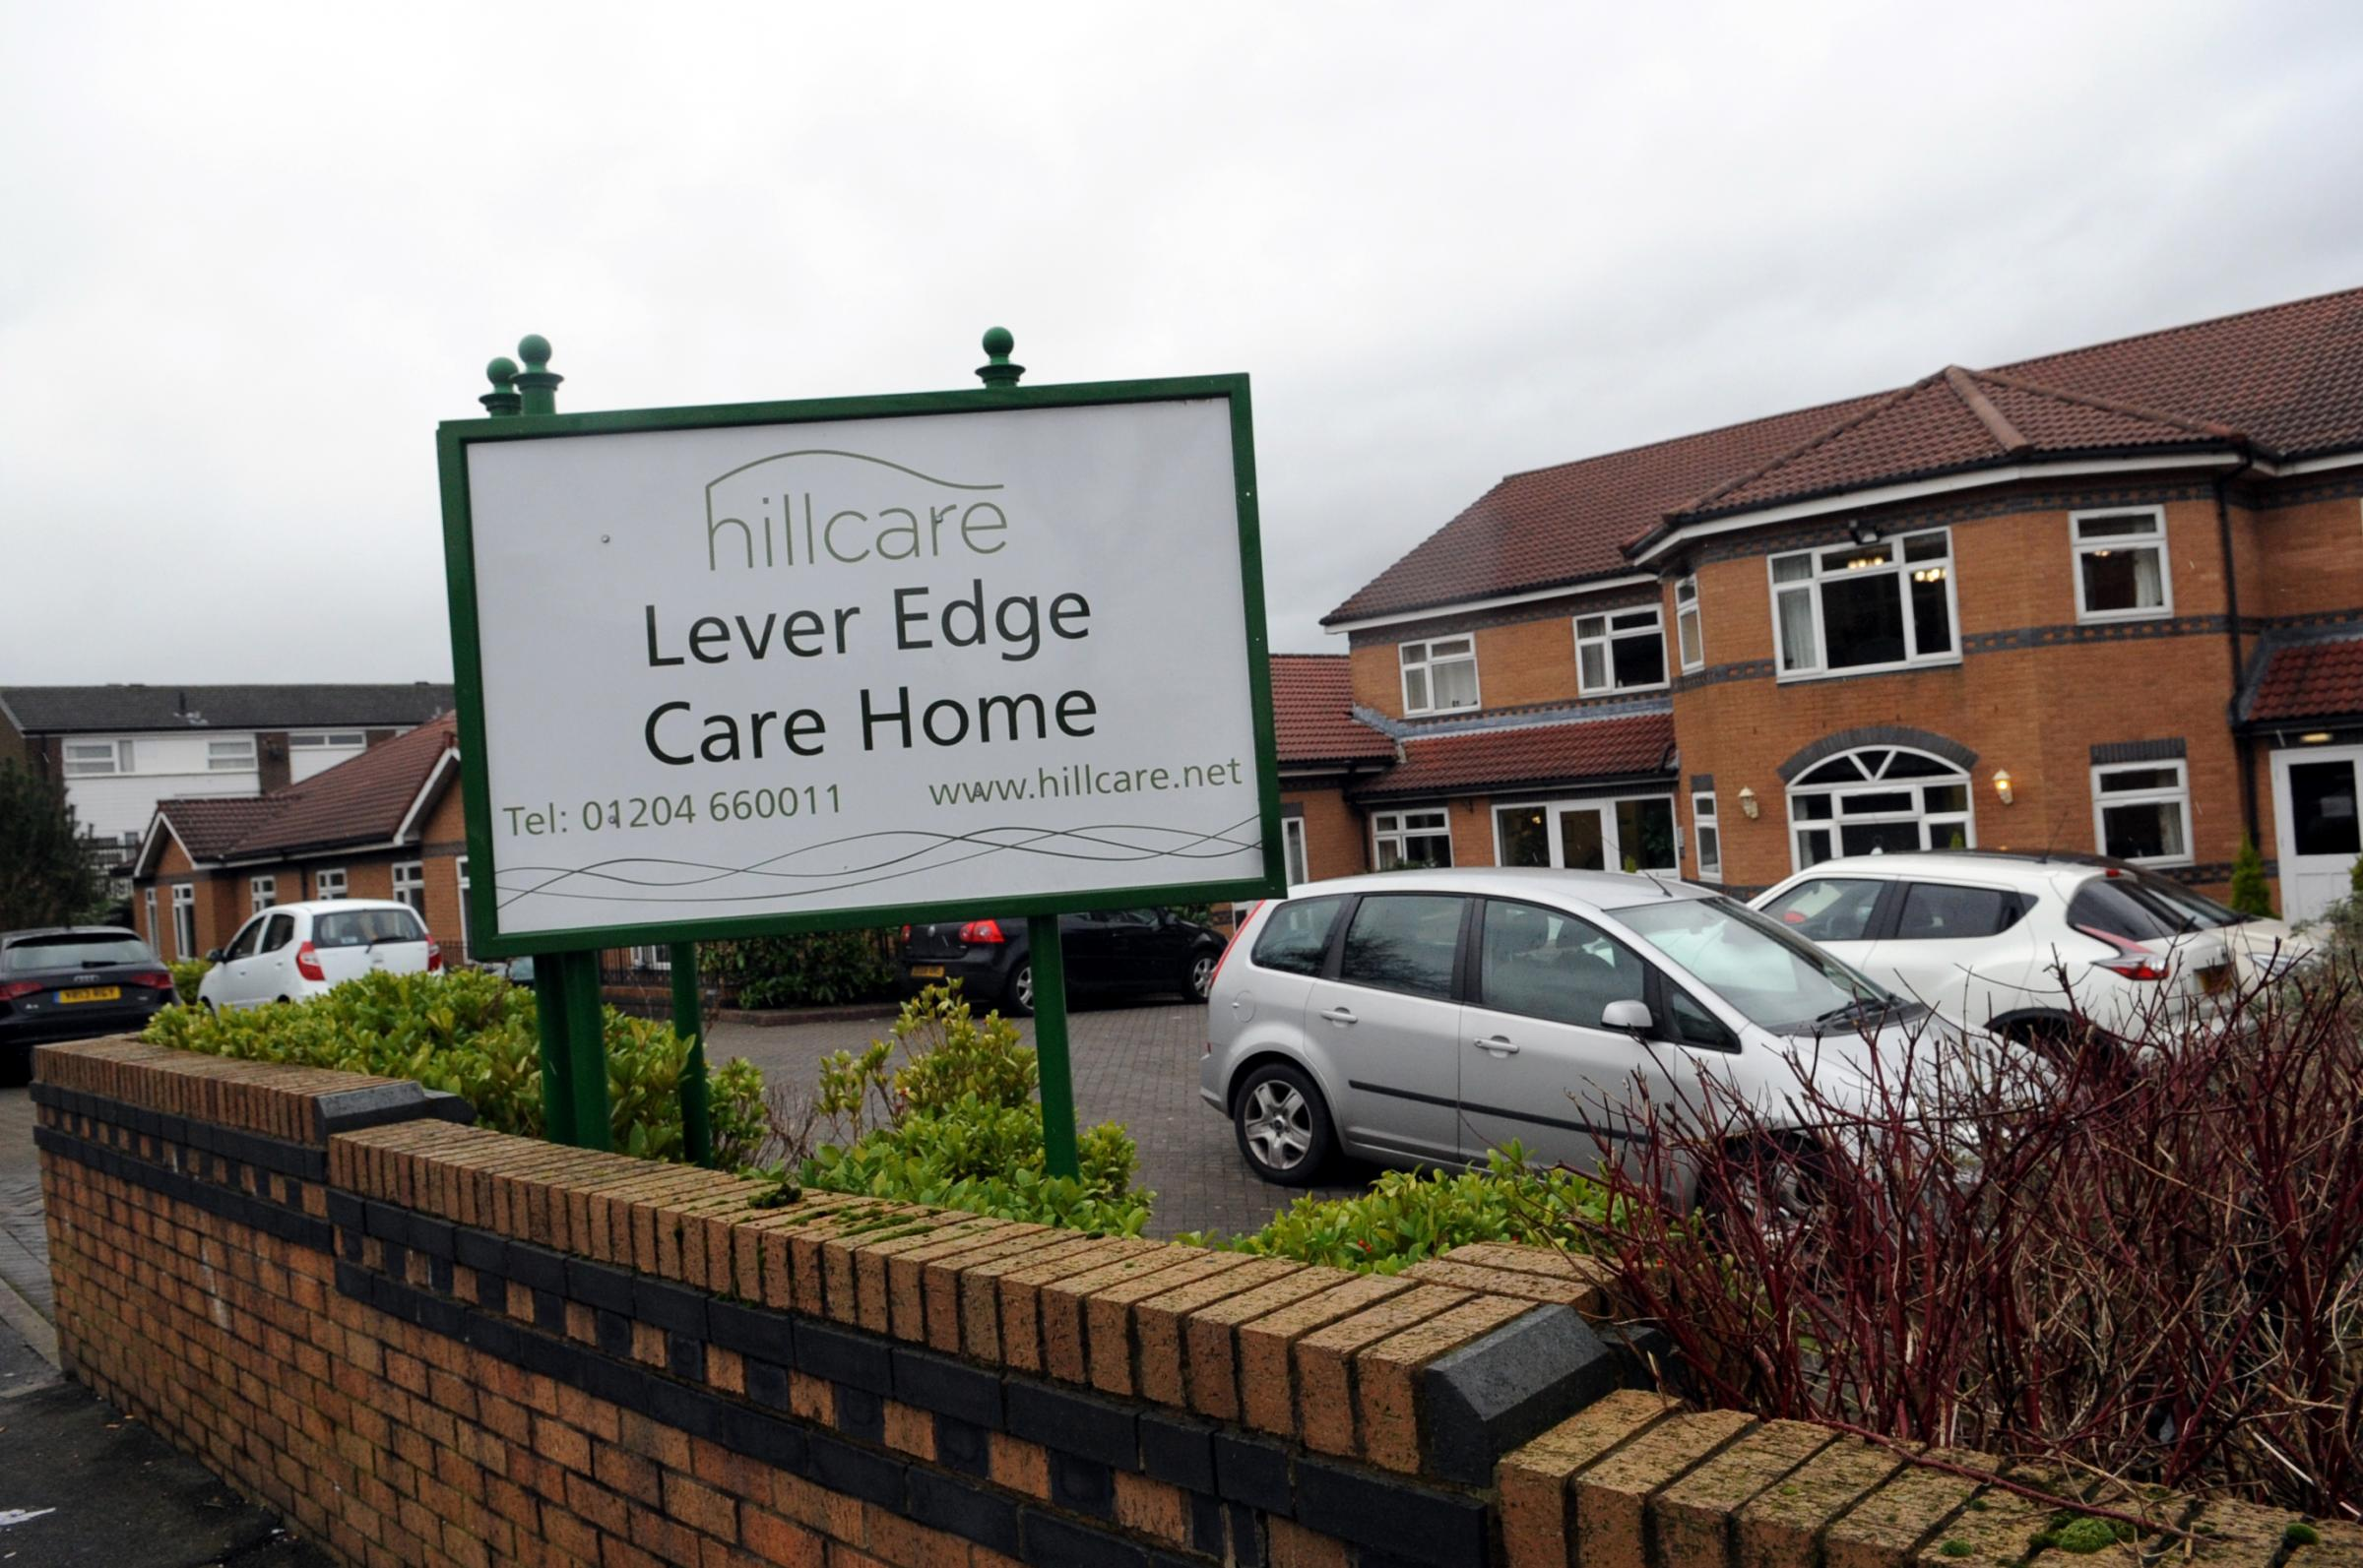 Five Women Charged With Perverting The Course Of Justice After Death 86 Year Old Man At Lever Edge Care Home Great From Bolton News